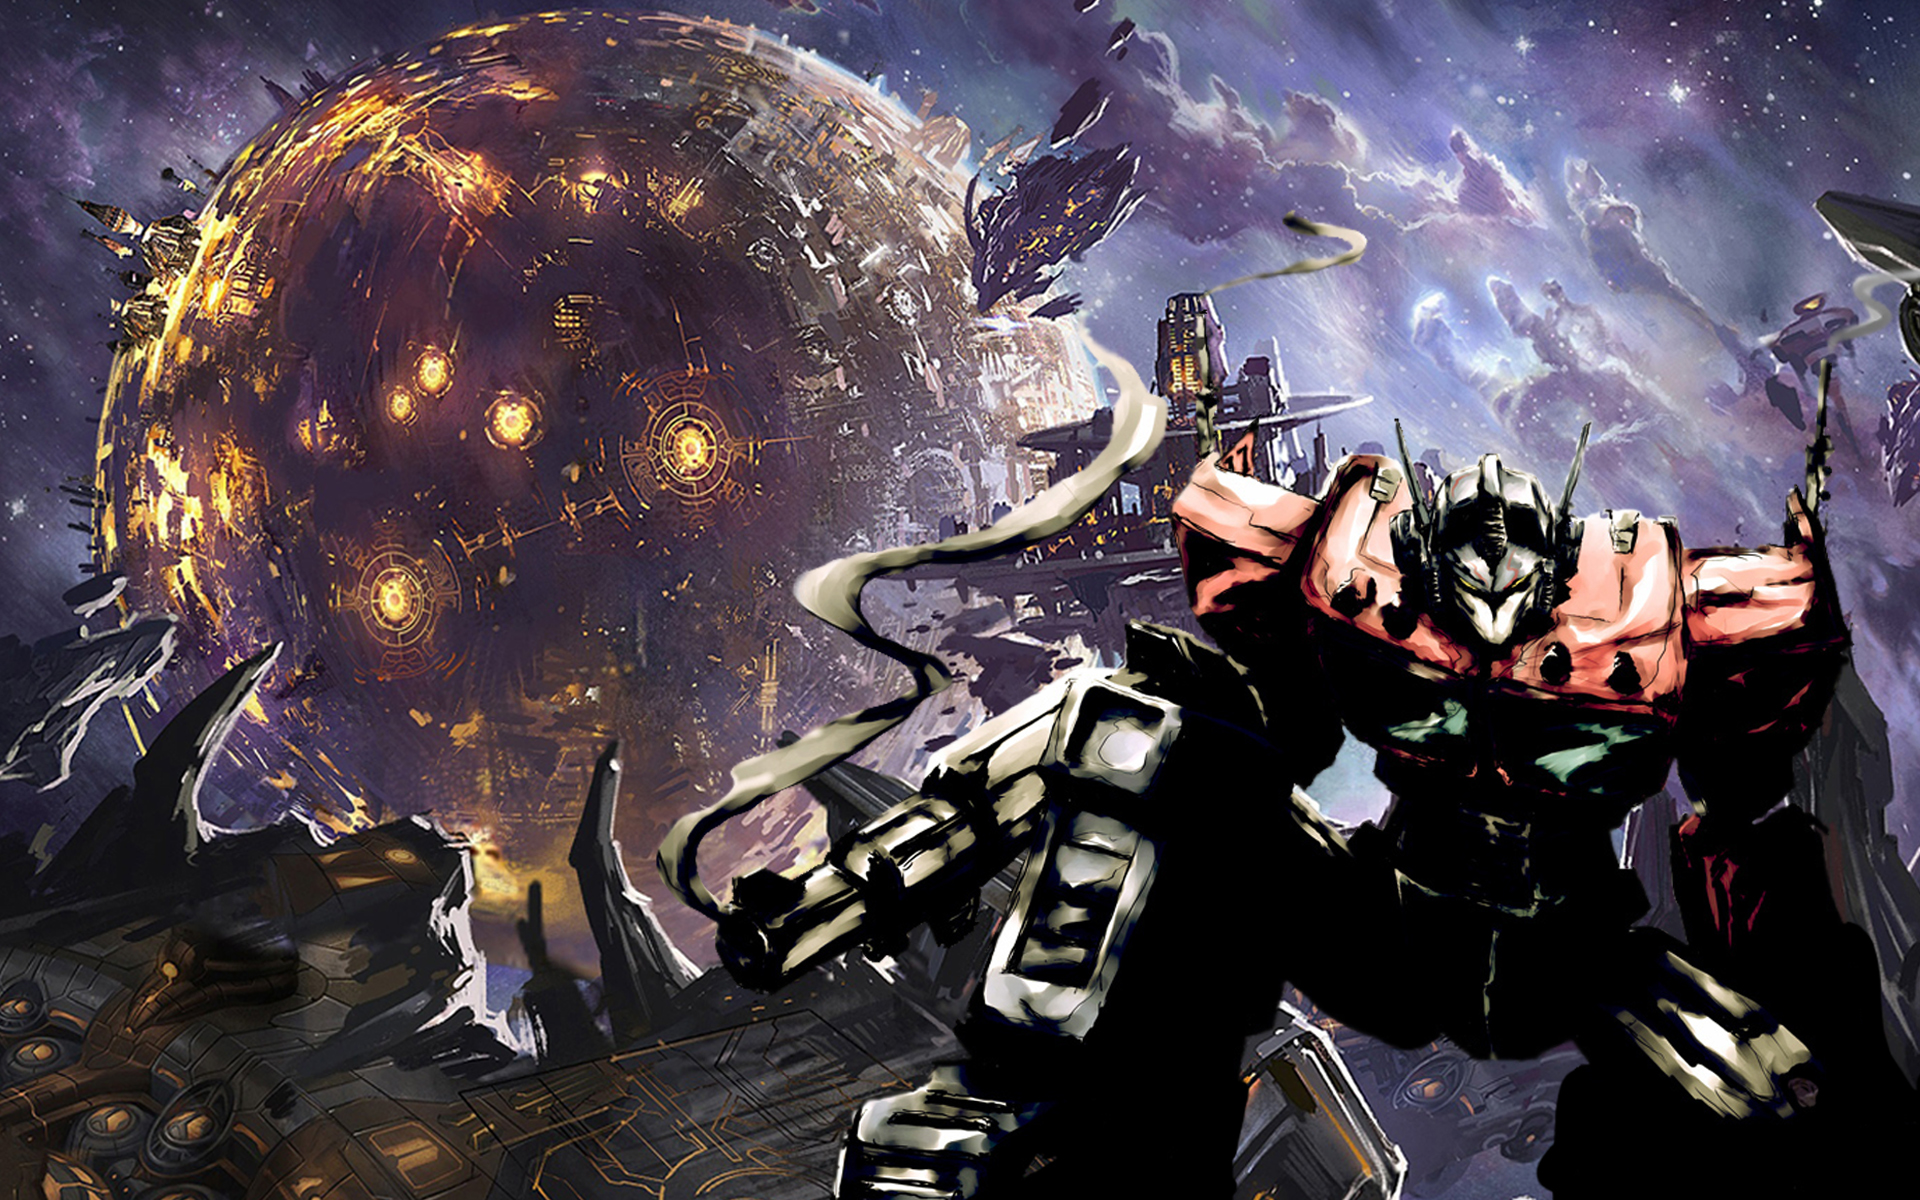 Fall of Cybertron Wallpaper images 1920x1200